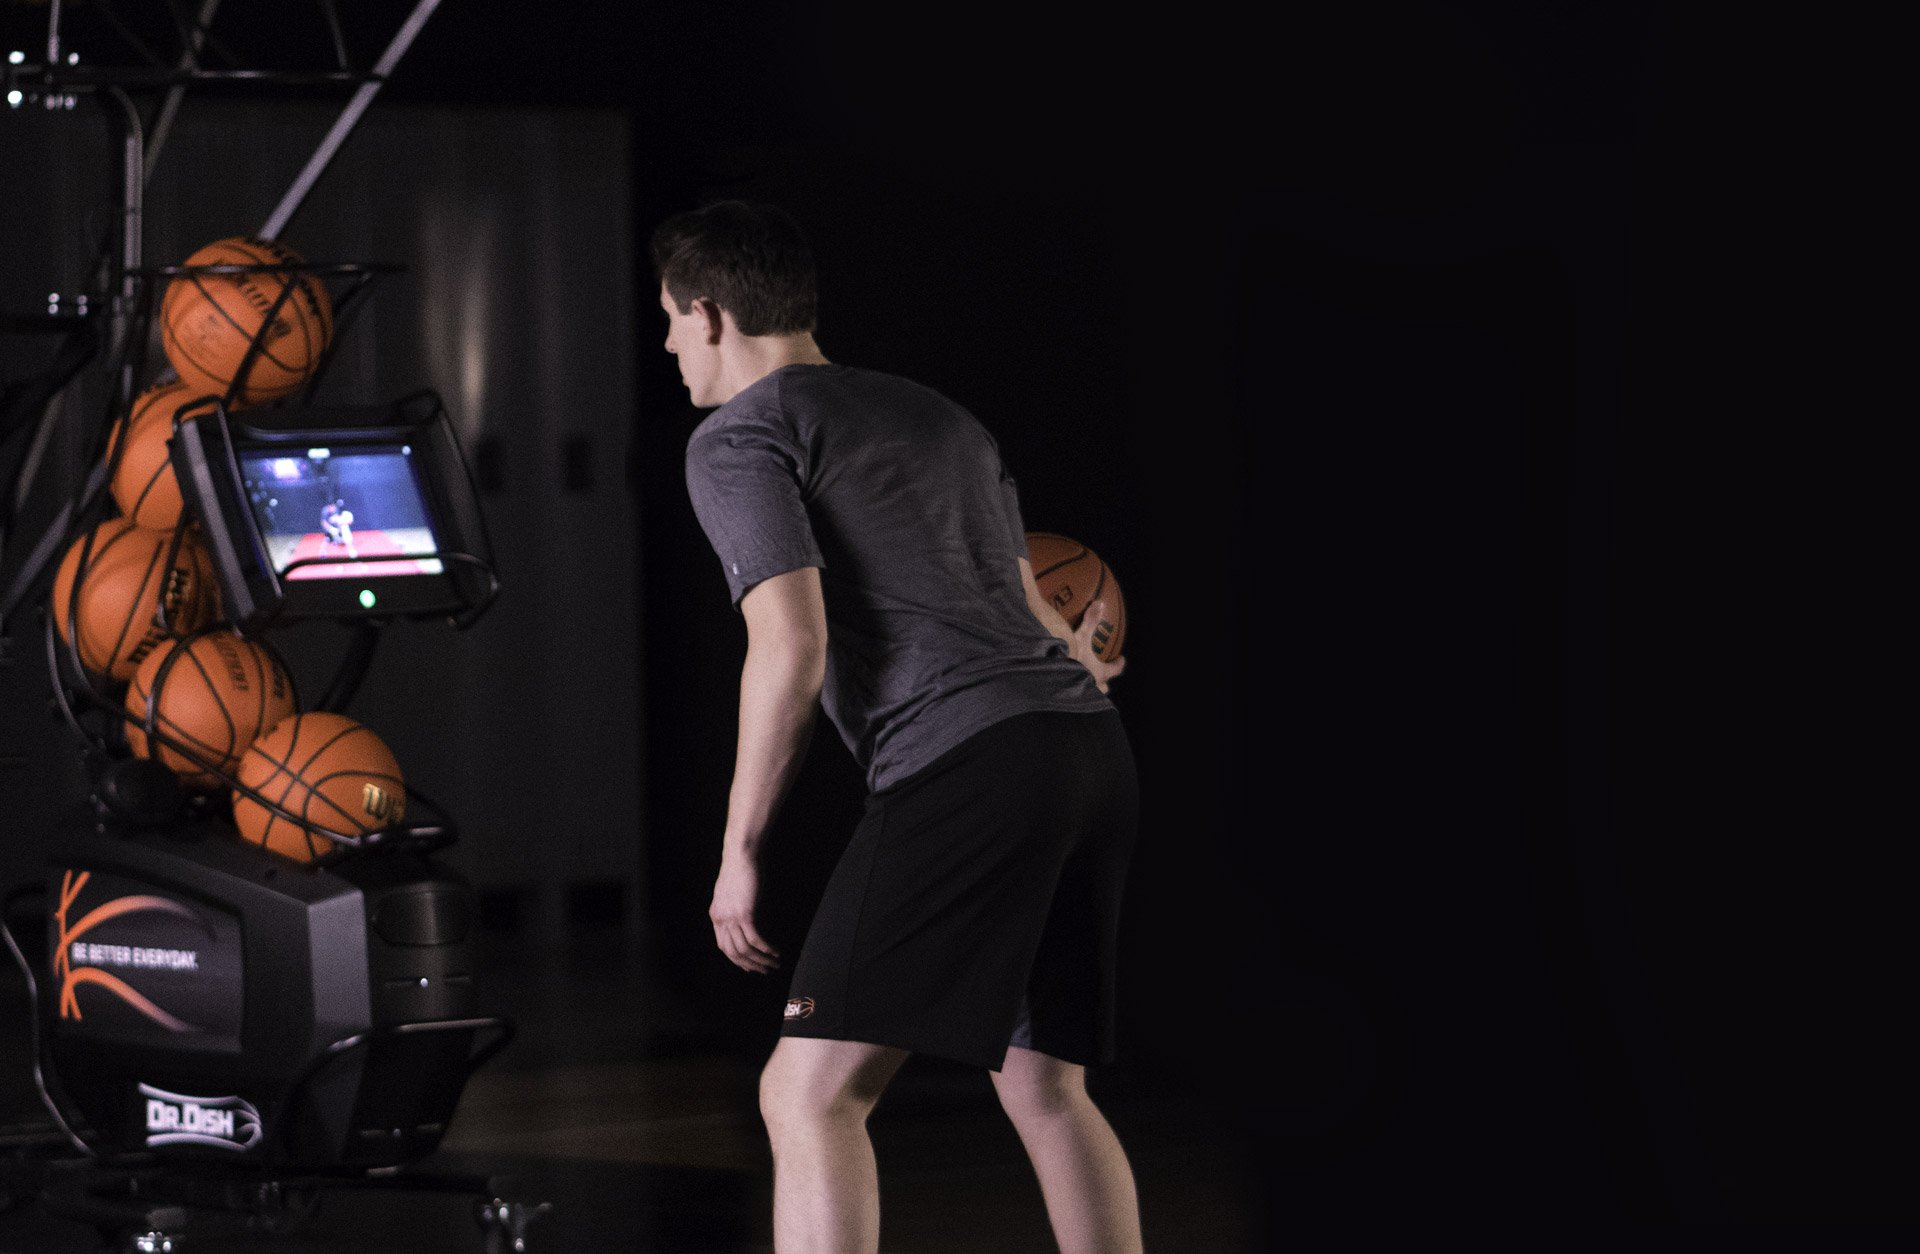 Basketball Player Using Shooting Machine